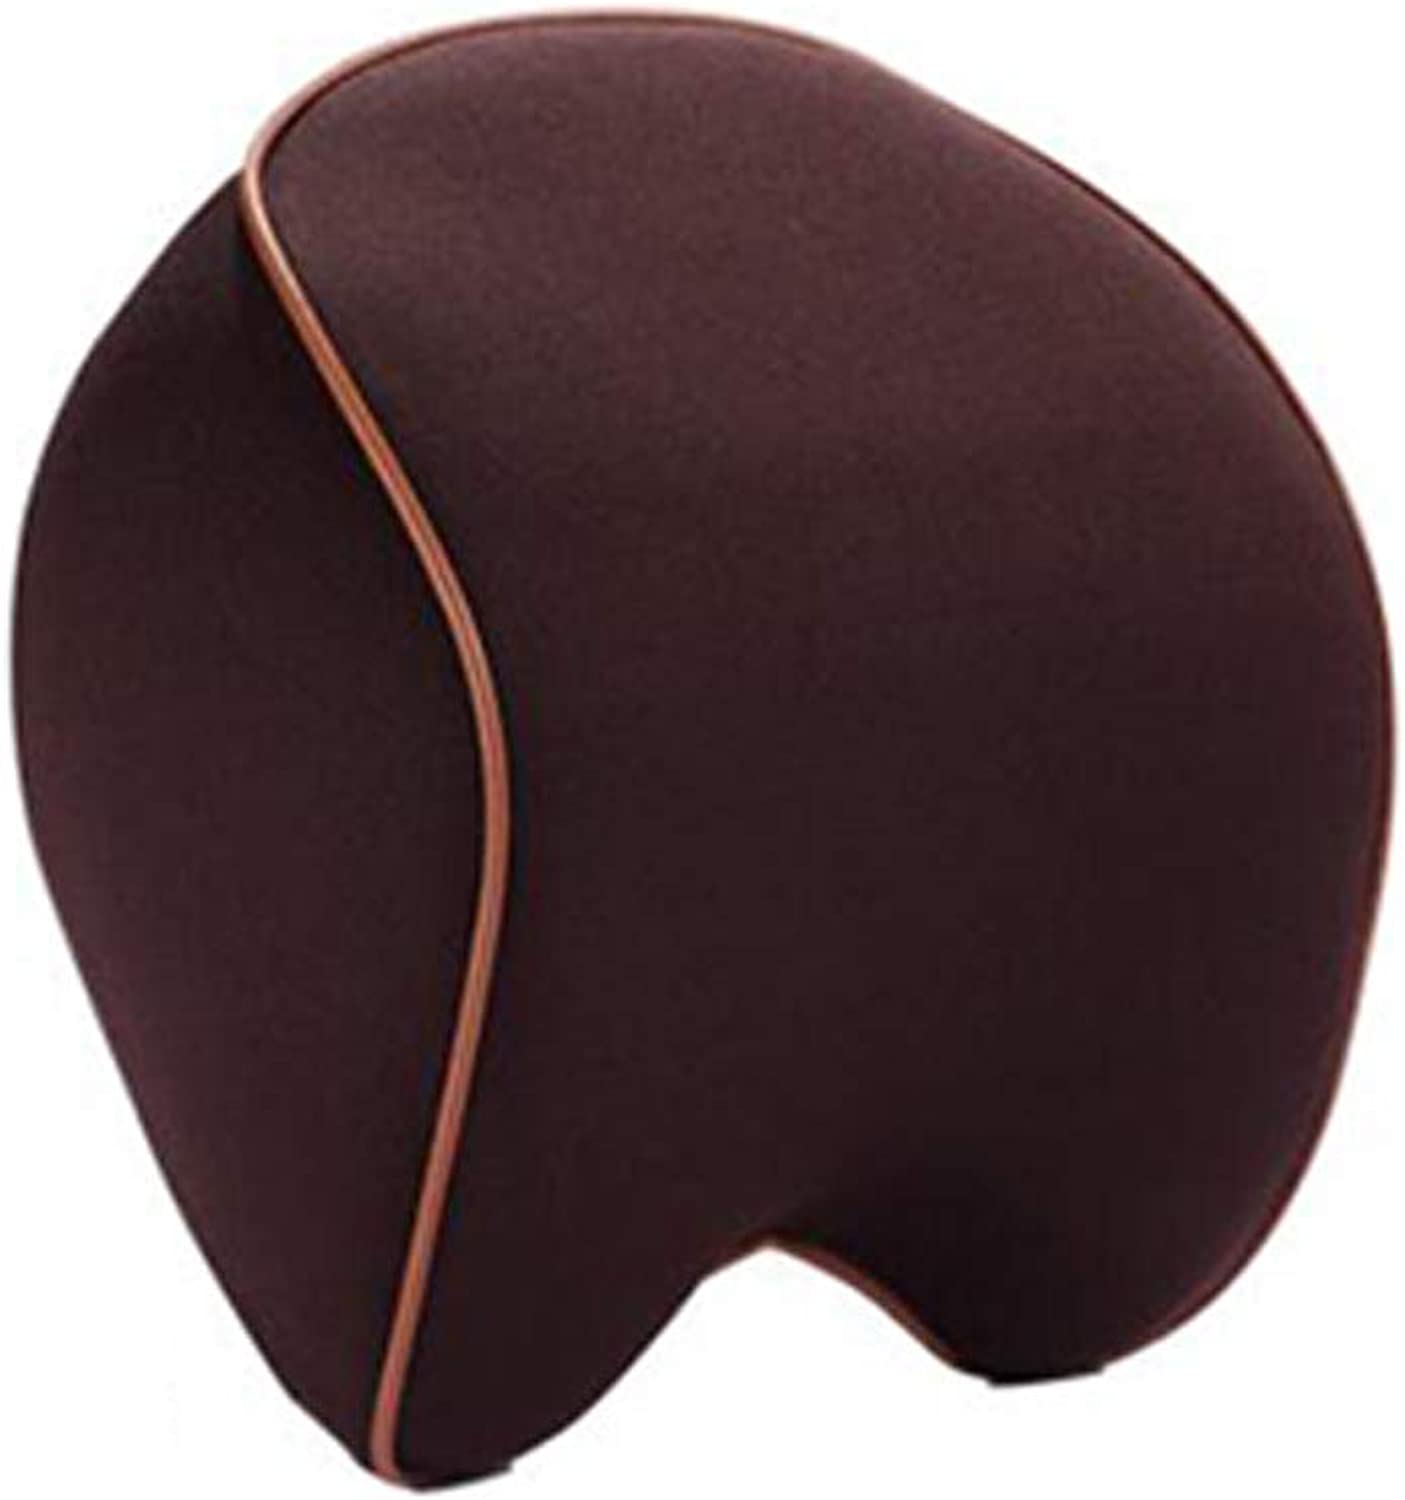 Car Neck Support Pillow, Seat Pillow, Car Interior Orthopedic Breathable Neck Waist Massage, Relieve Pain Pressure, 4 colors,Brown